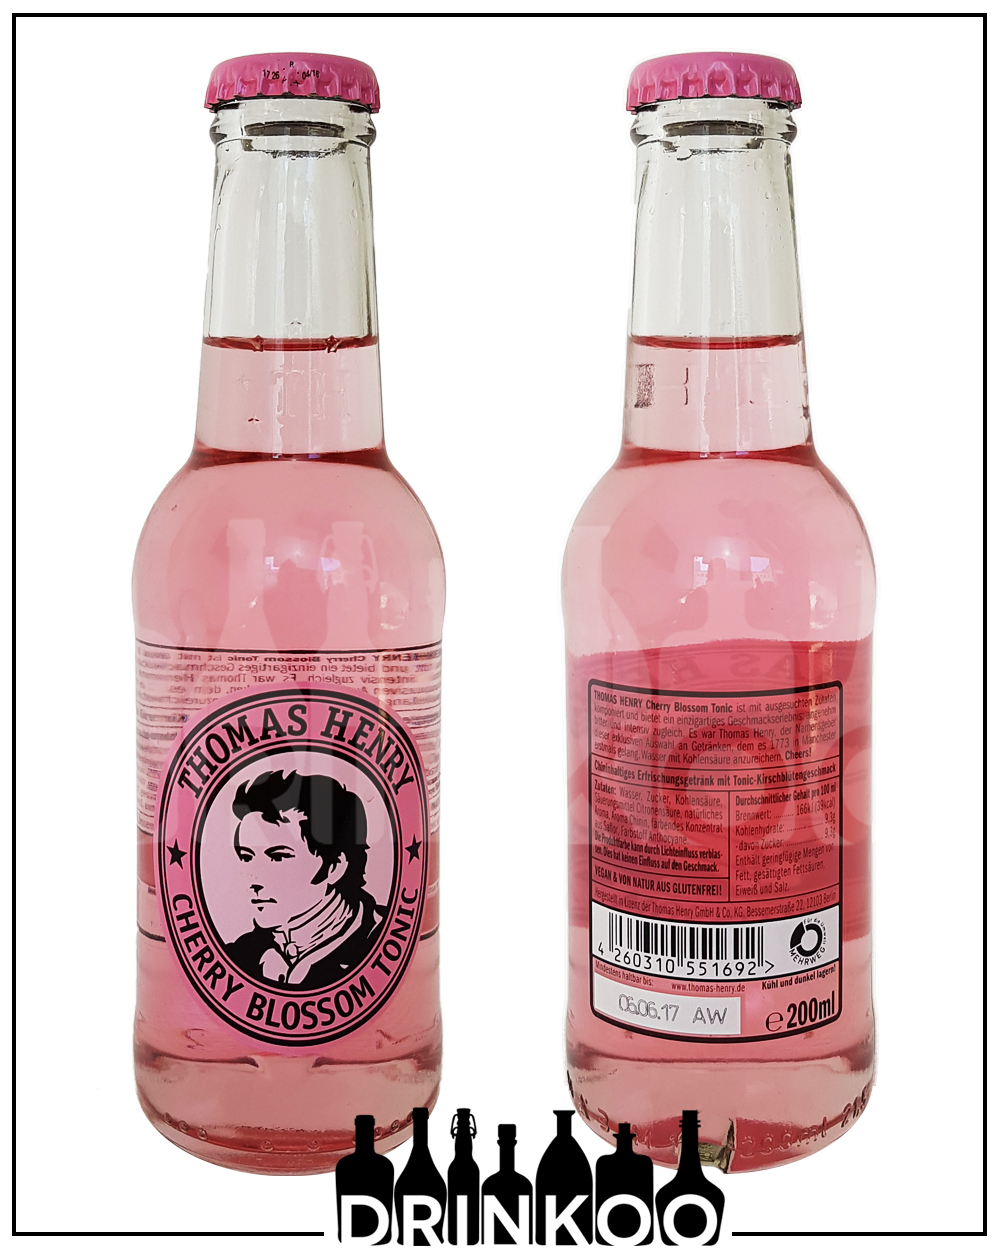 Thomas Henry Cherry Blossom Tonic Water